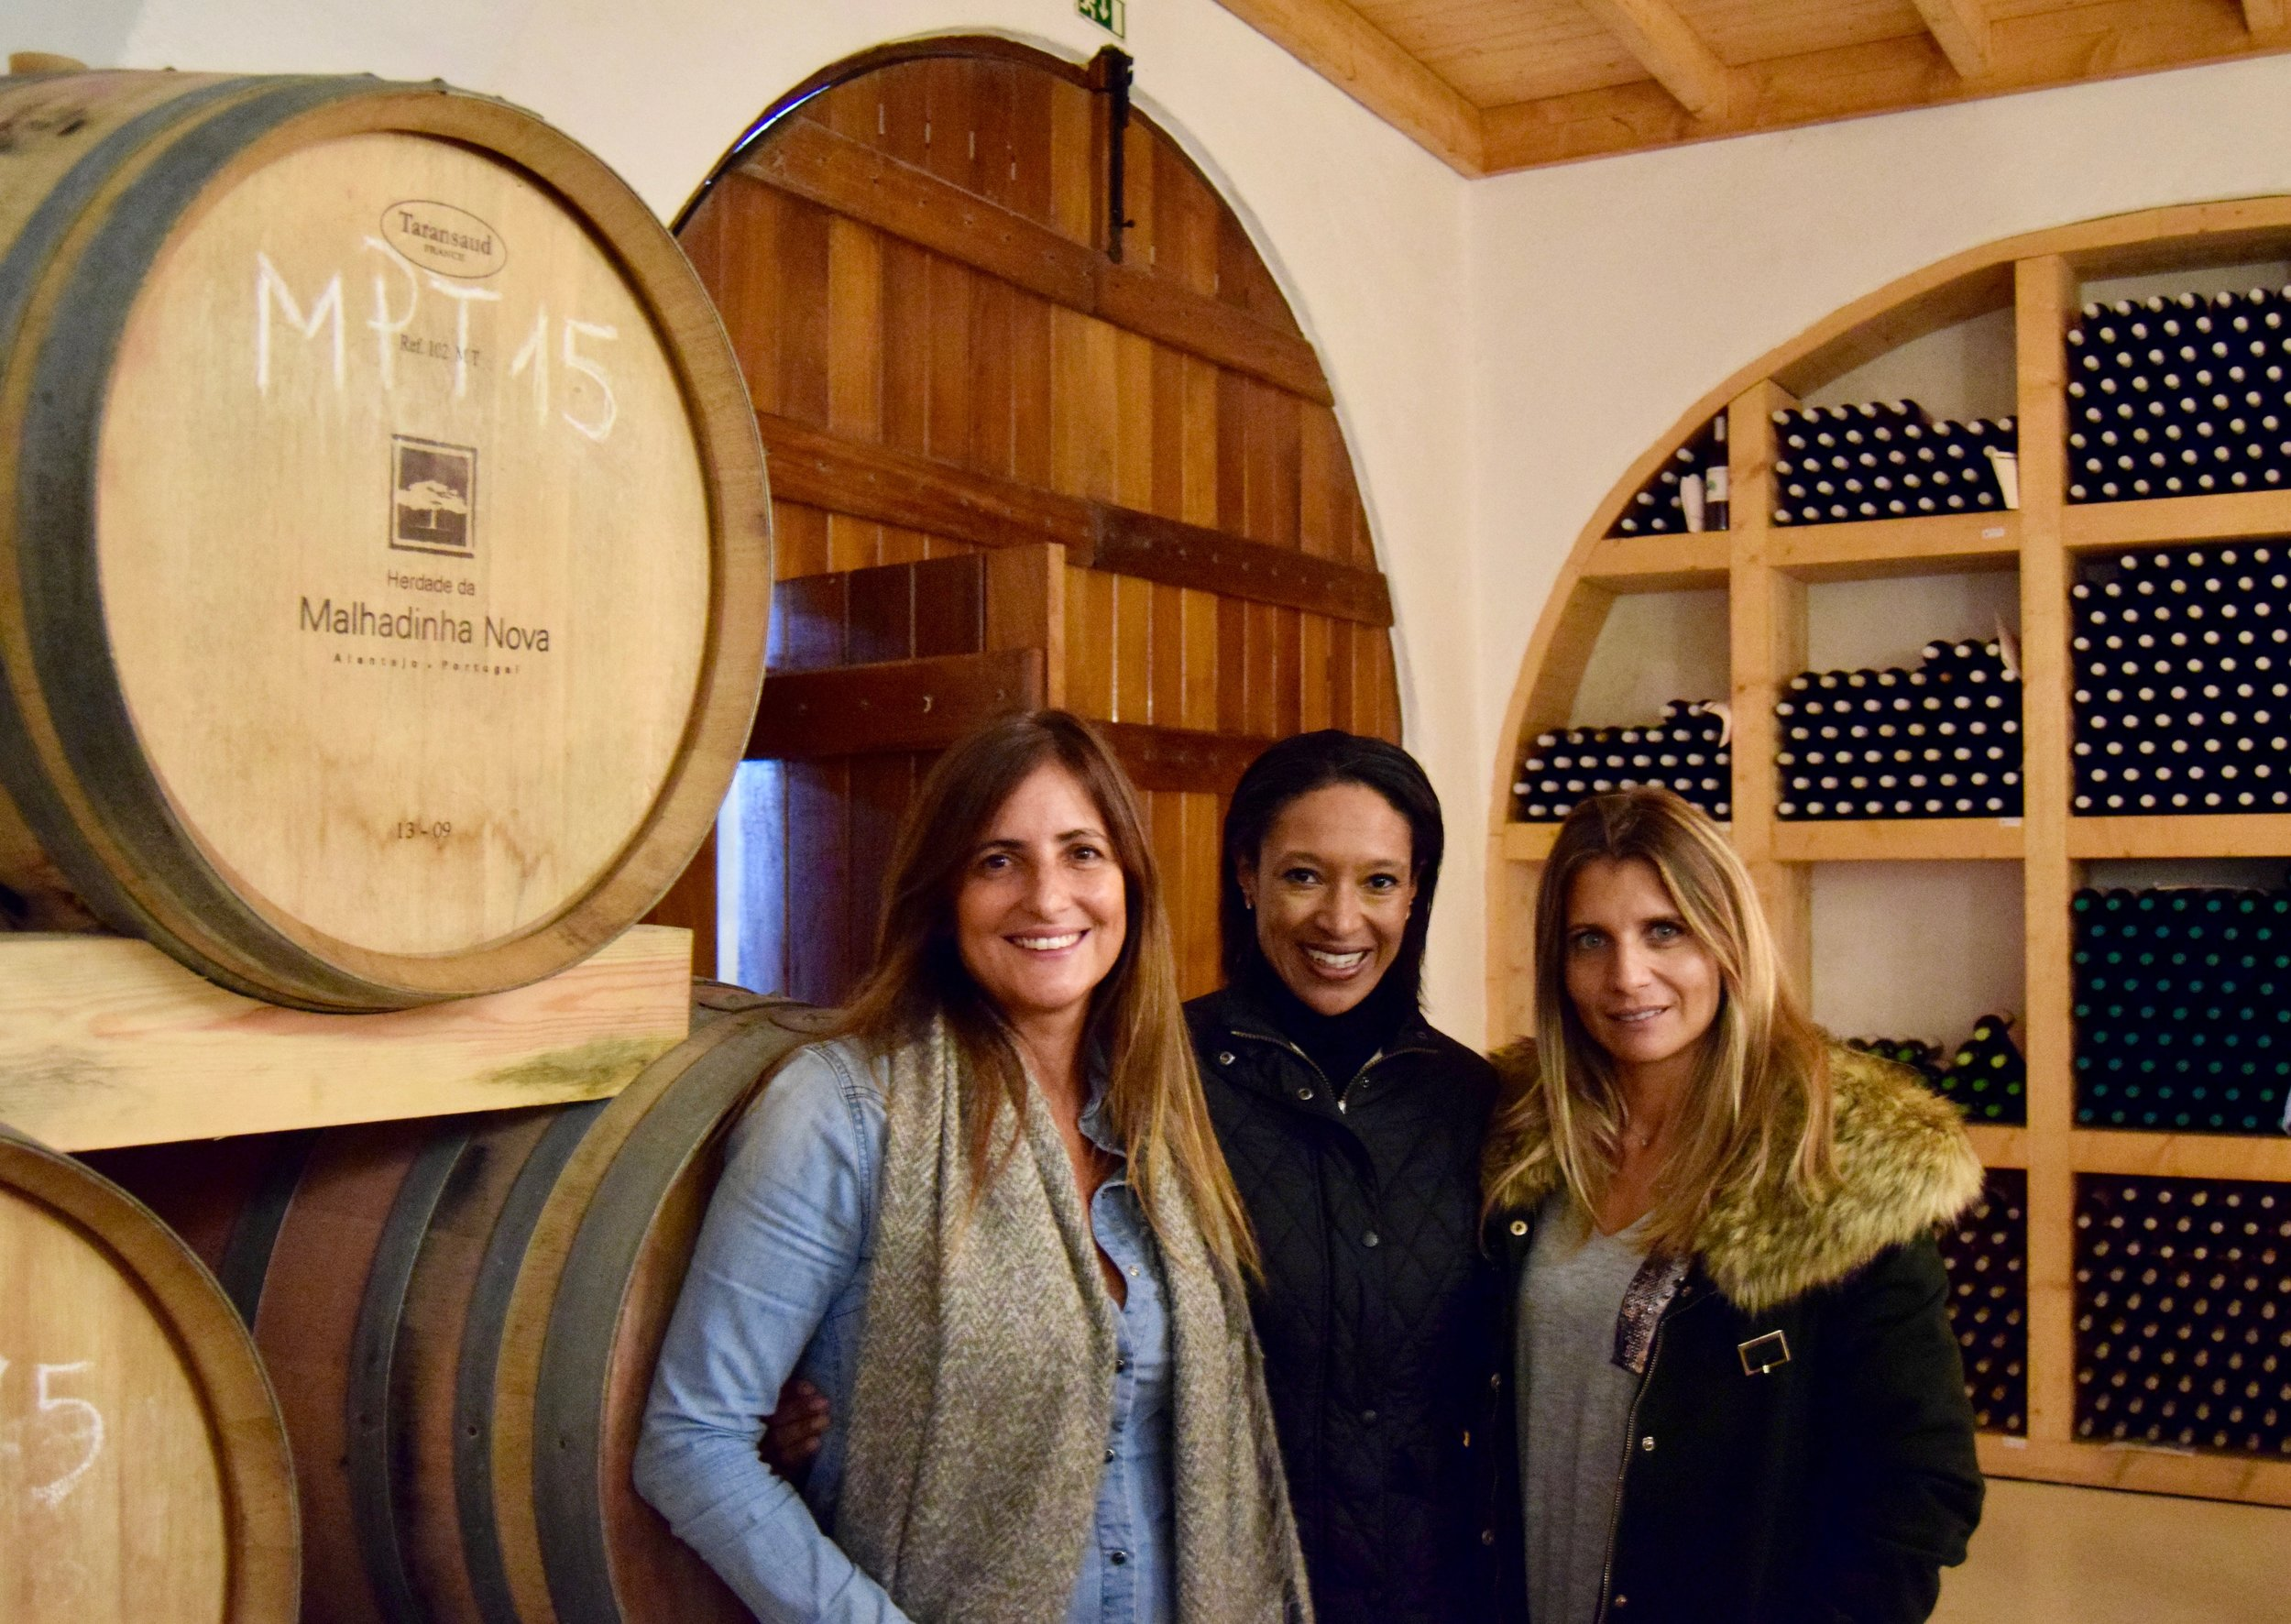 Malhadinha nova luxury country house, spa and vineyards with owner & CEO rita soares (left)